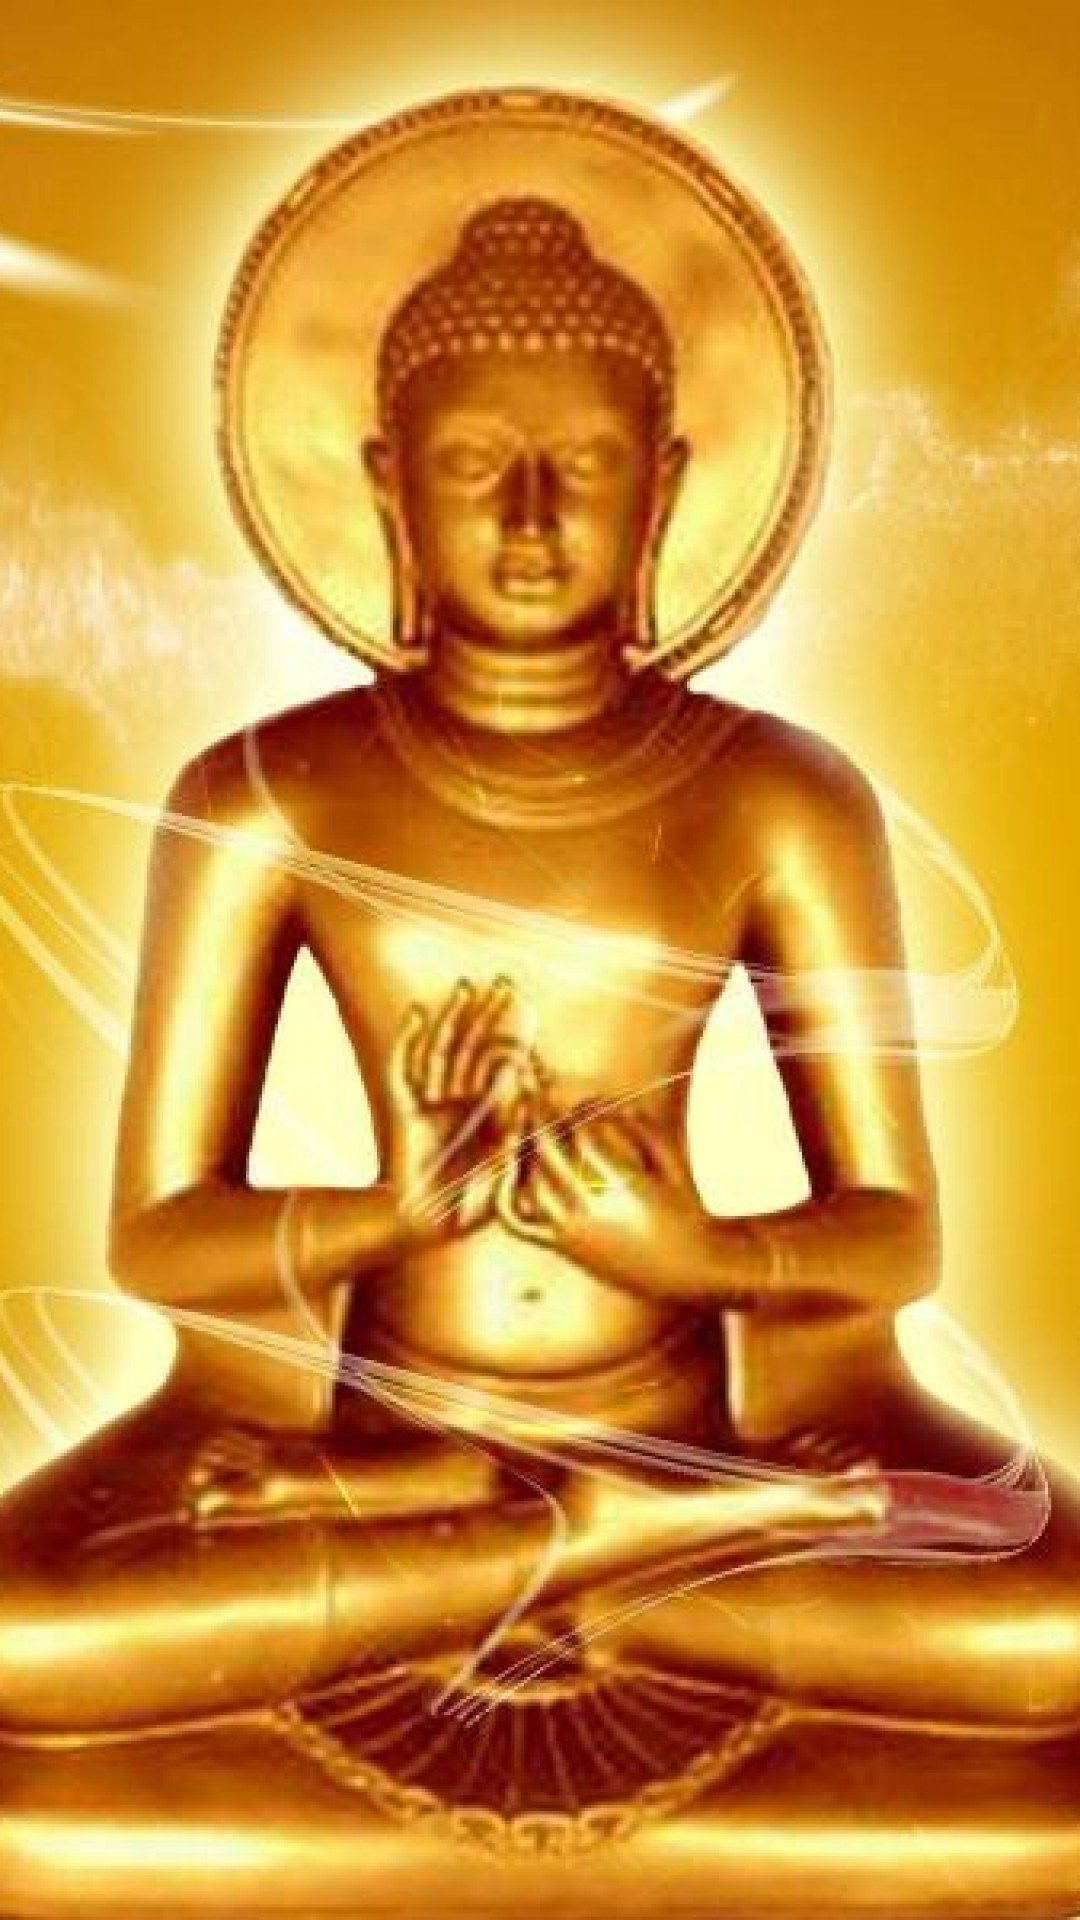 Res: 1080x1920, Buddhist Wallpaper Android / Image Source